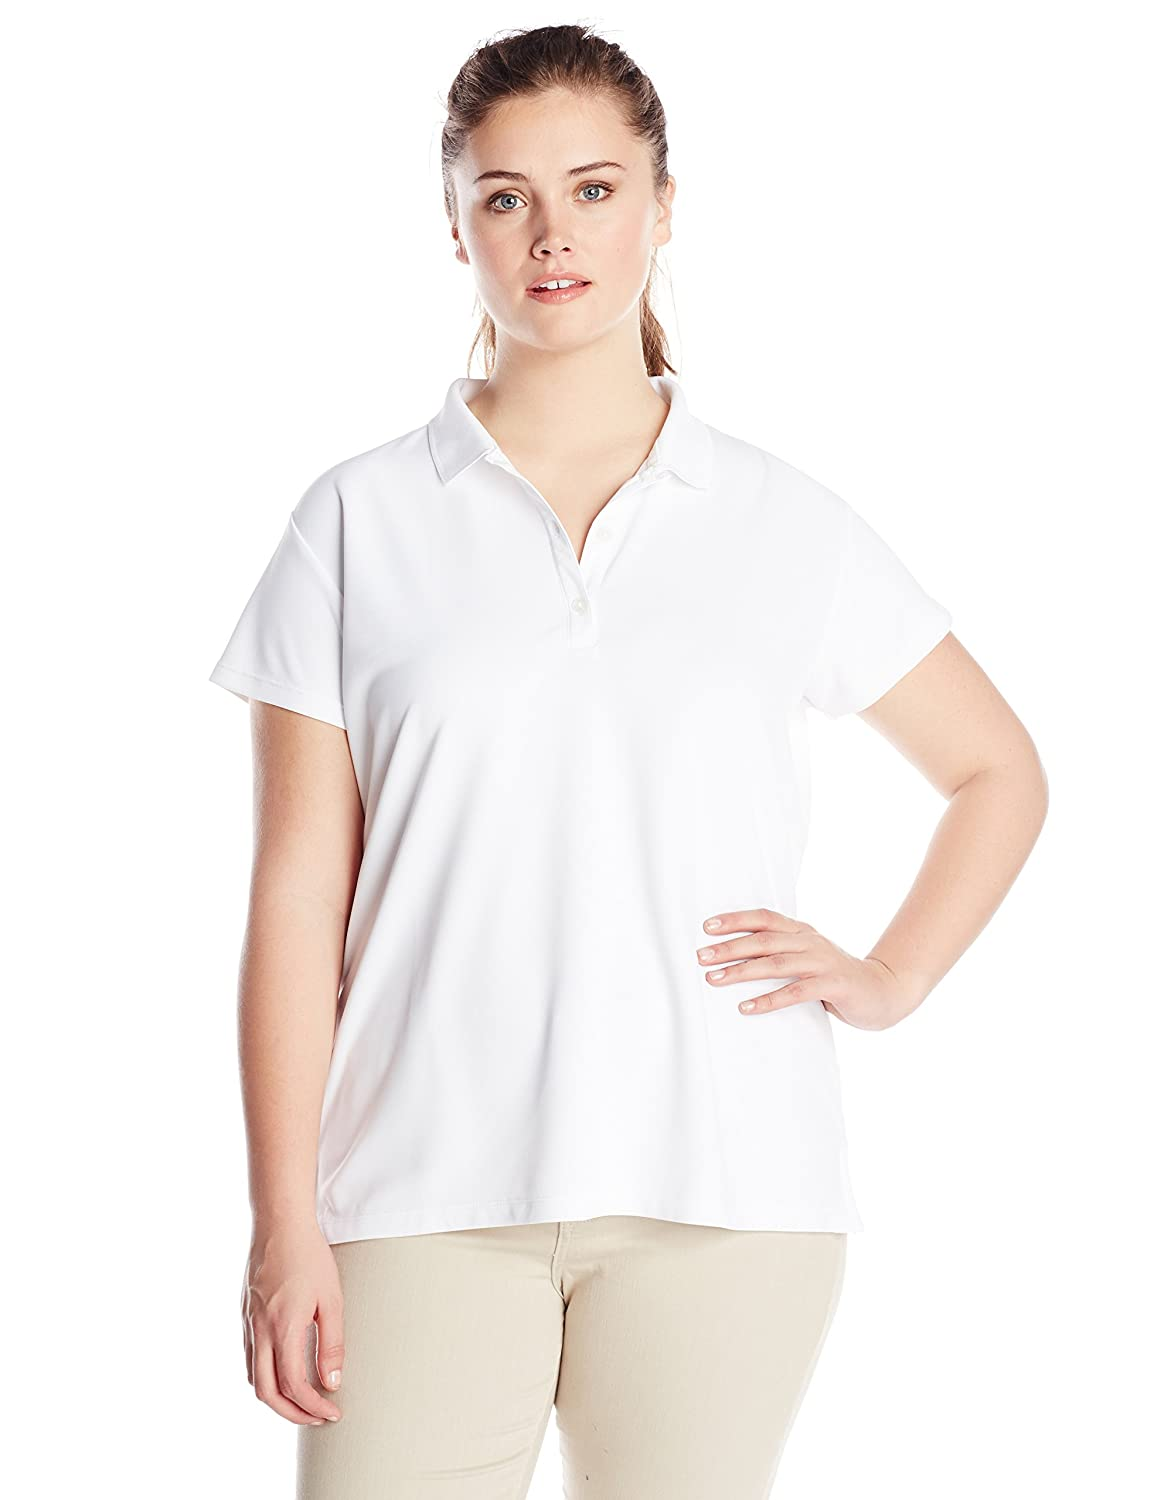 Columbia Sportswear Women's Plus-Size Innisfree Short Sleeve Polo Shirt